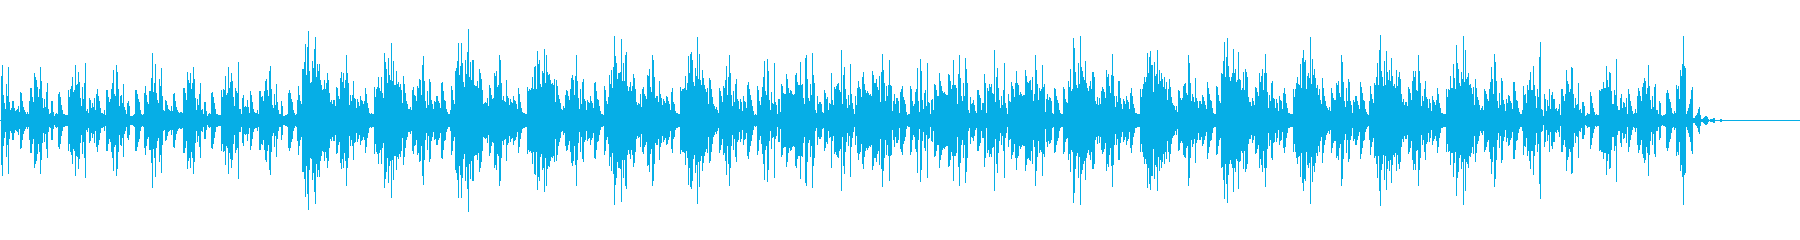 A plain play accompaniment when imagining's reproduced waveform